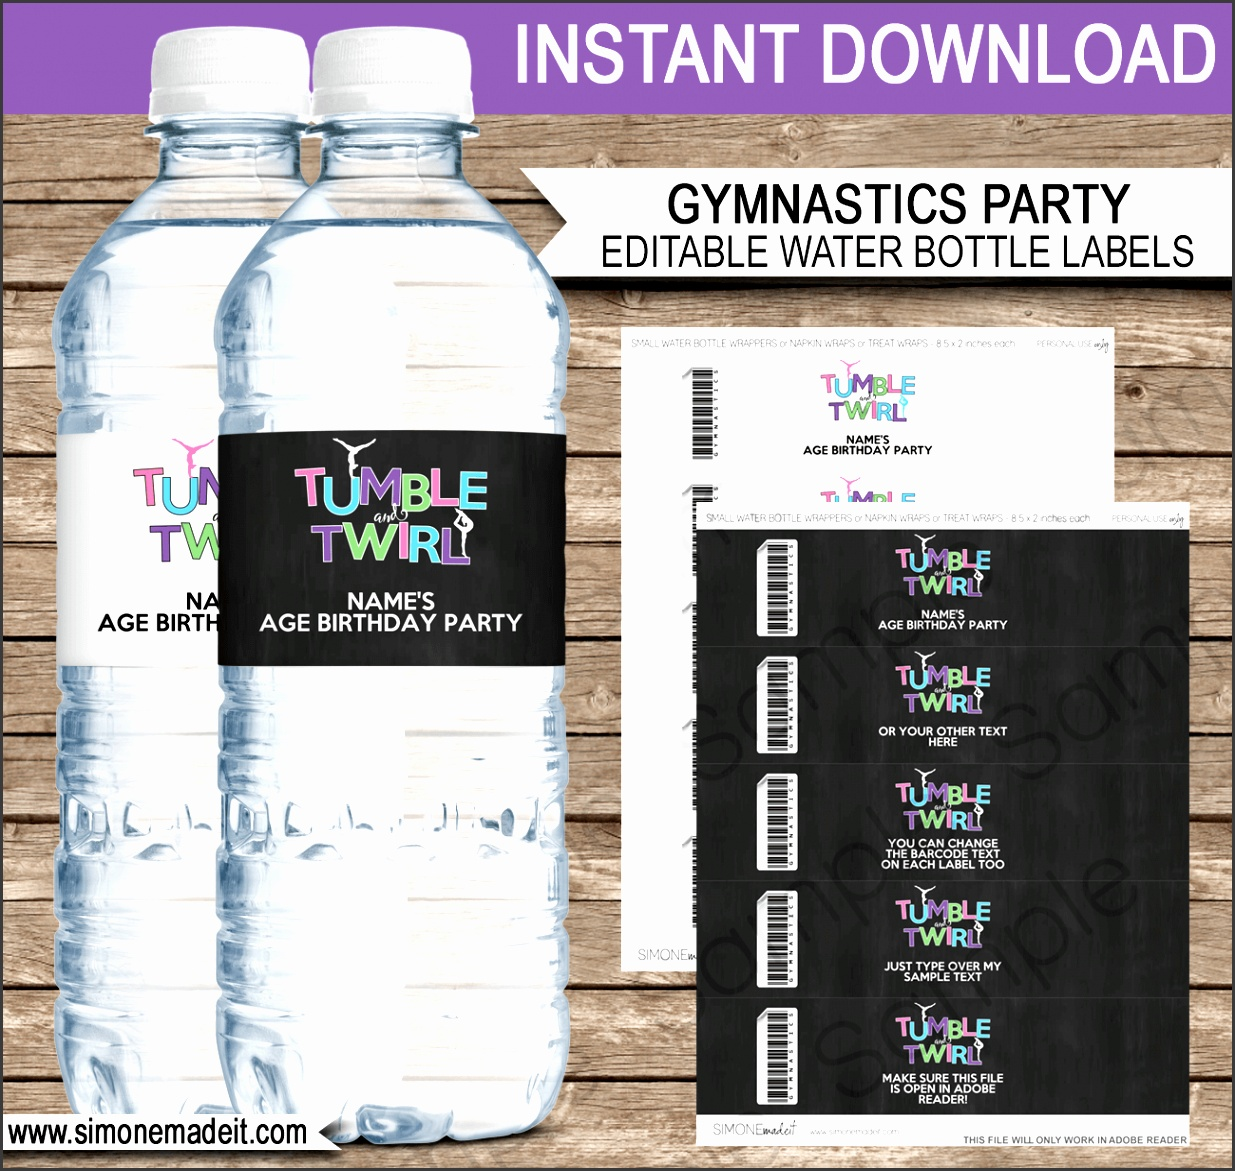 Gymnastics Party Water Bottle Labels Birthday Party Editable DIY Template